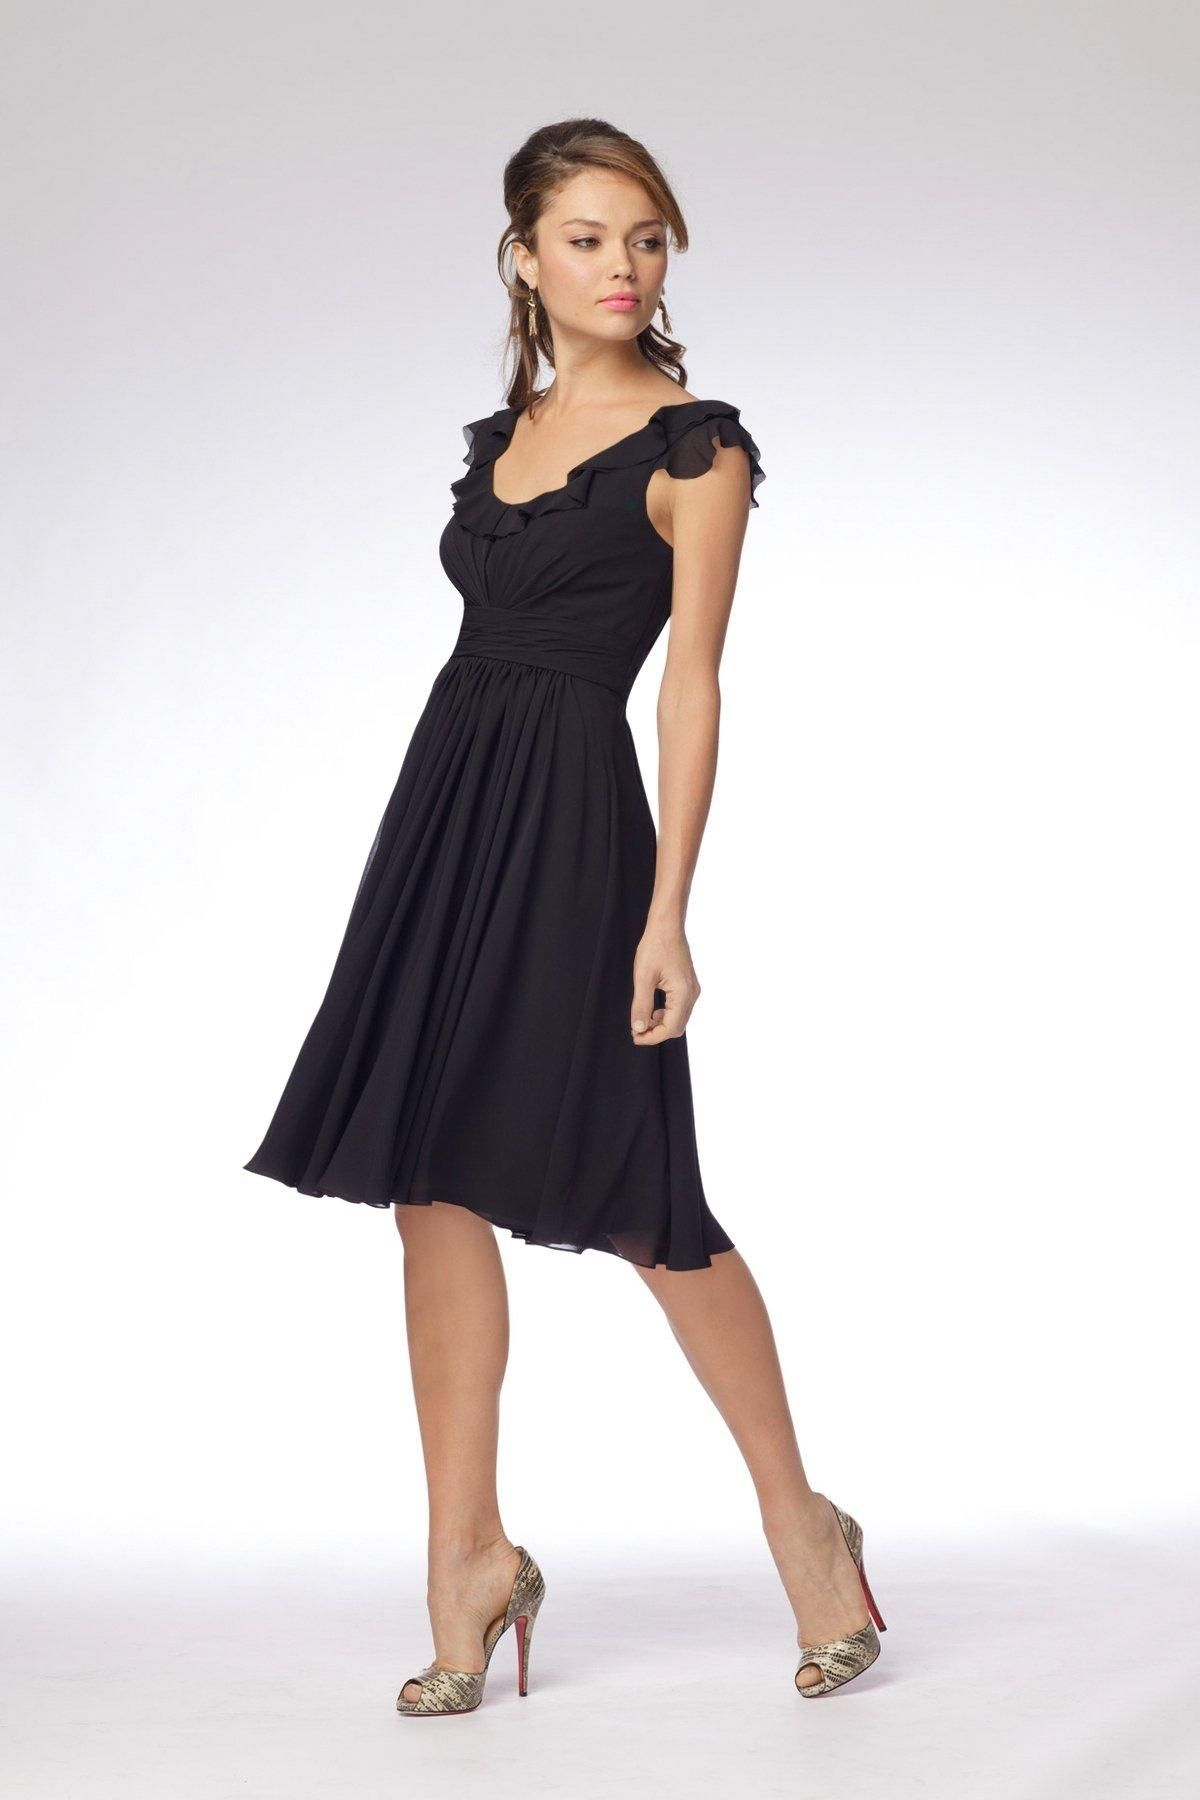 Summer Wedding Guest Little Black Dresses